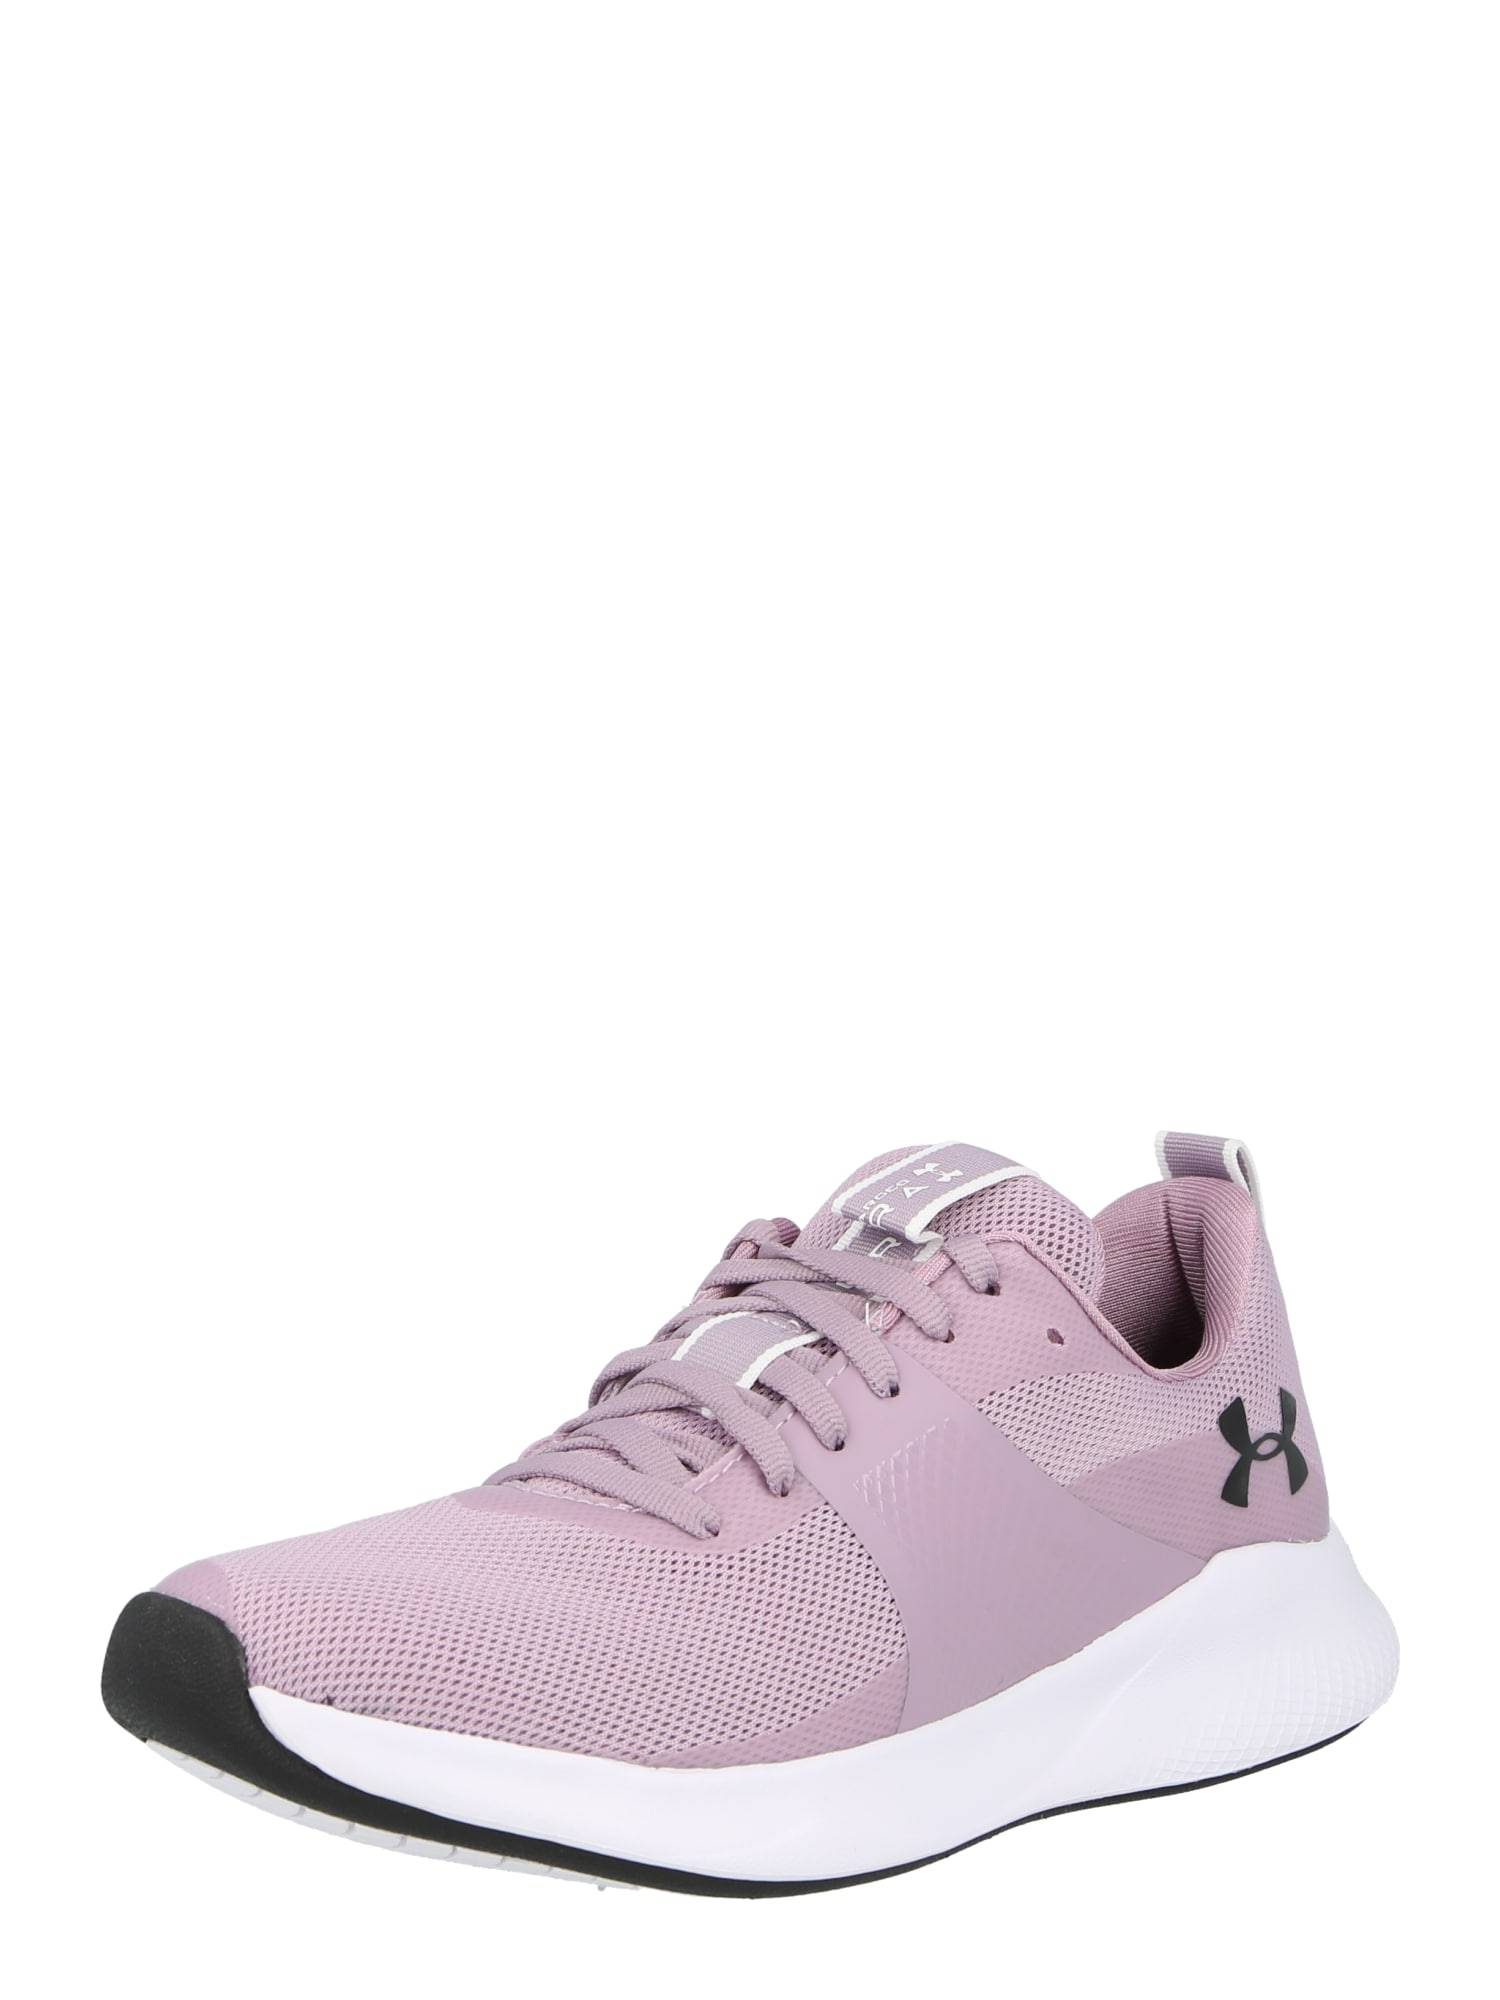 UNDER ARMOUR Chaussure de sport 'Charged Aurora'  - Rose - Taille: 5 - female